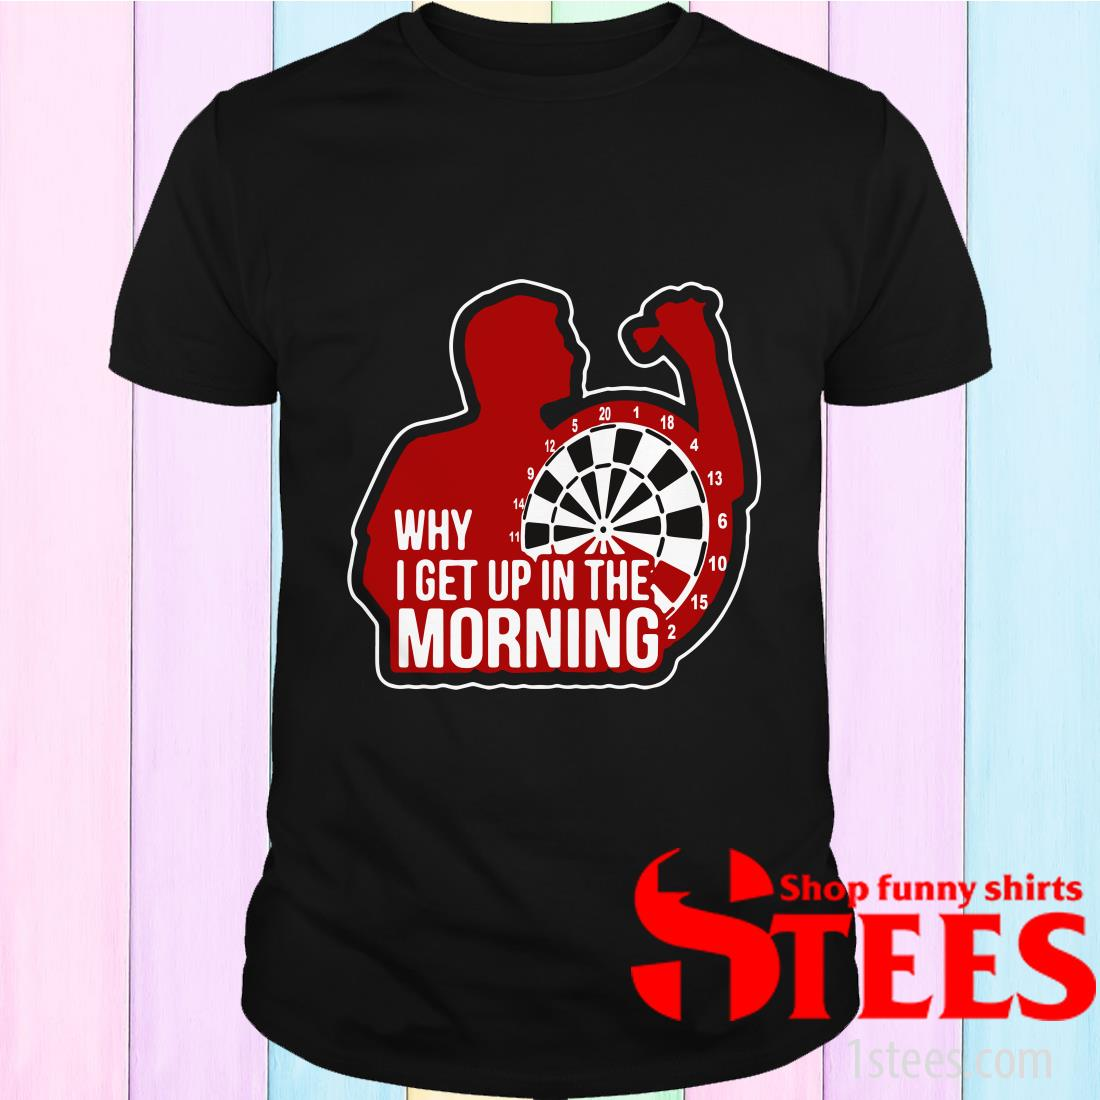 Darts Why I Get Up In The Morning T-Shirt